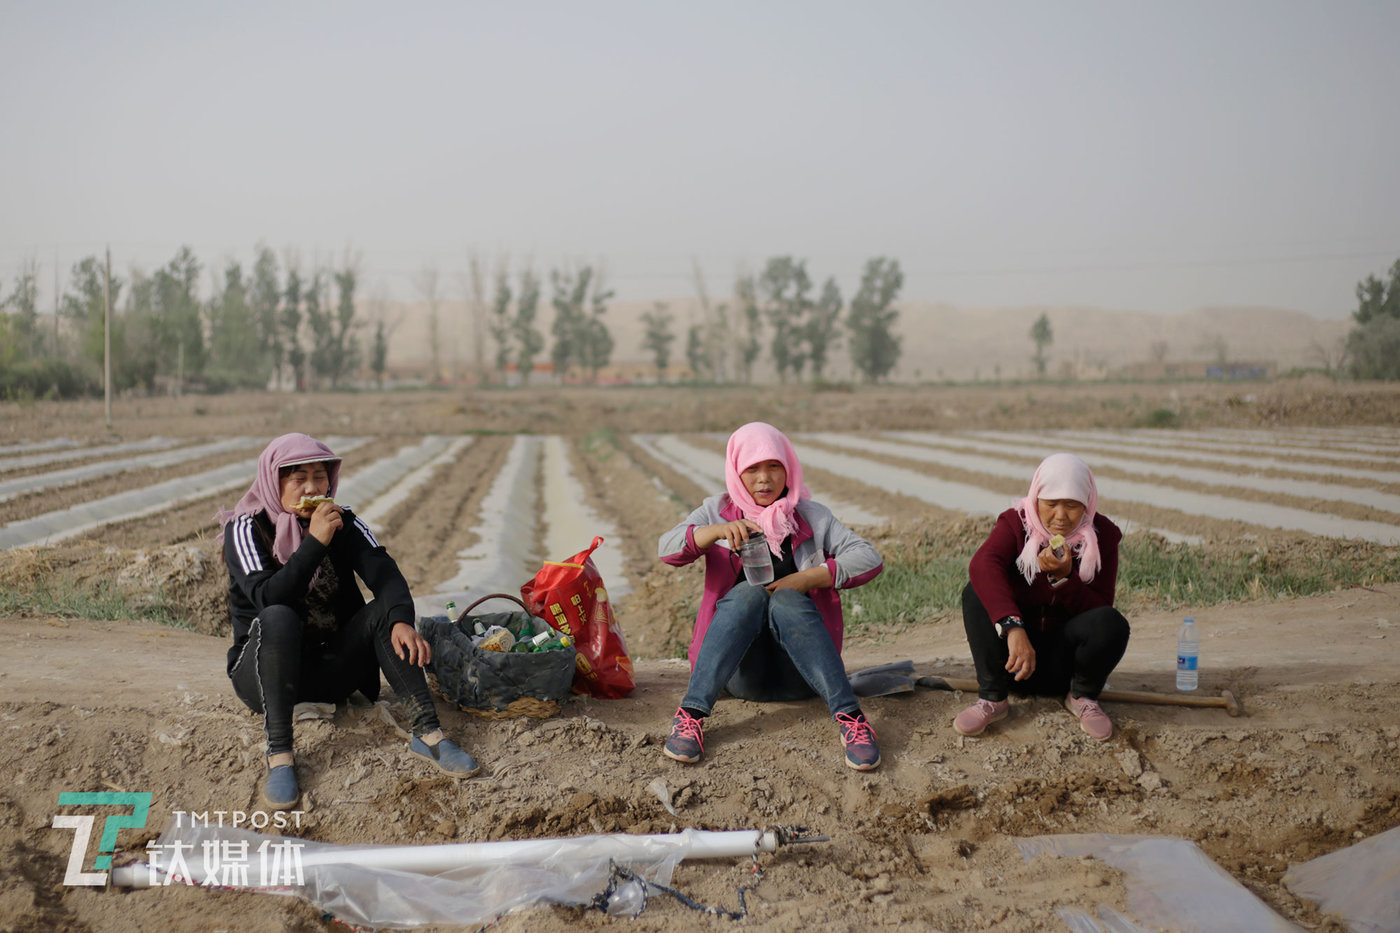 On busy days, they enlist help from nearby villagers who work as casual honeydew farmers for 150 RMB per day. At 8:30am, after two hours of hard work in the field, Xue